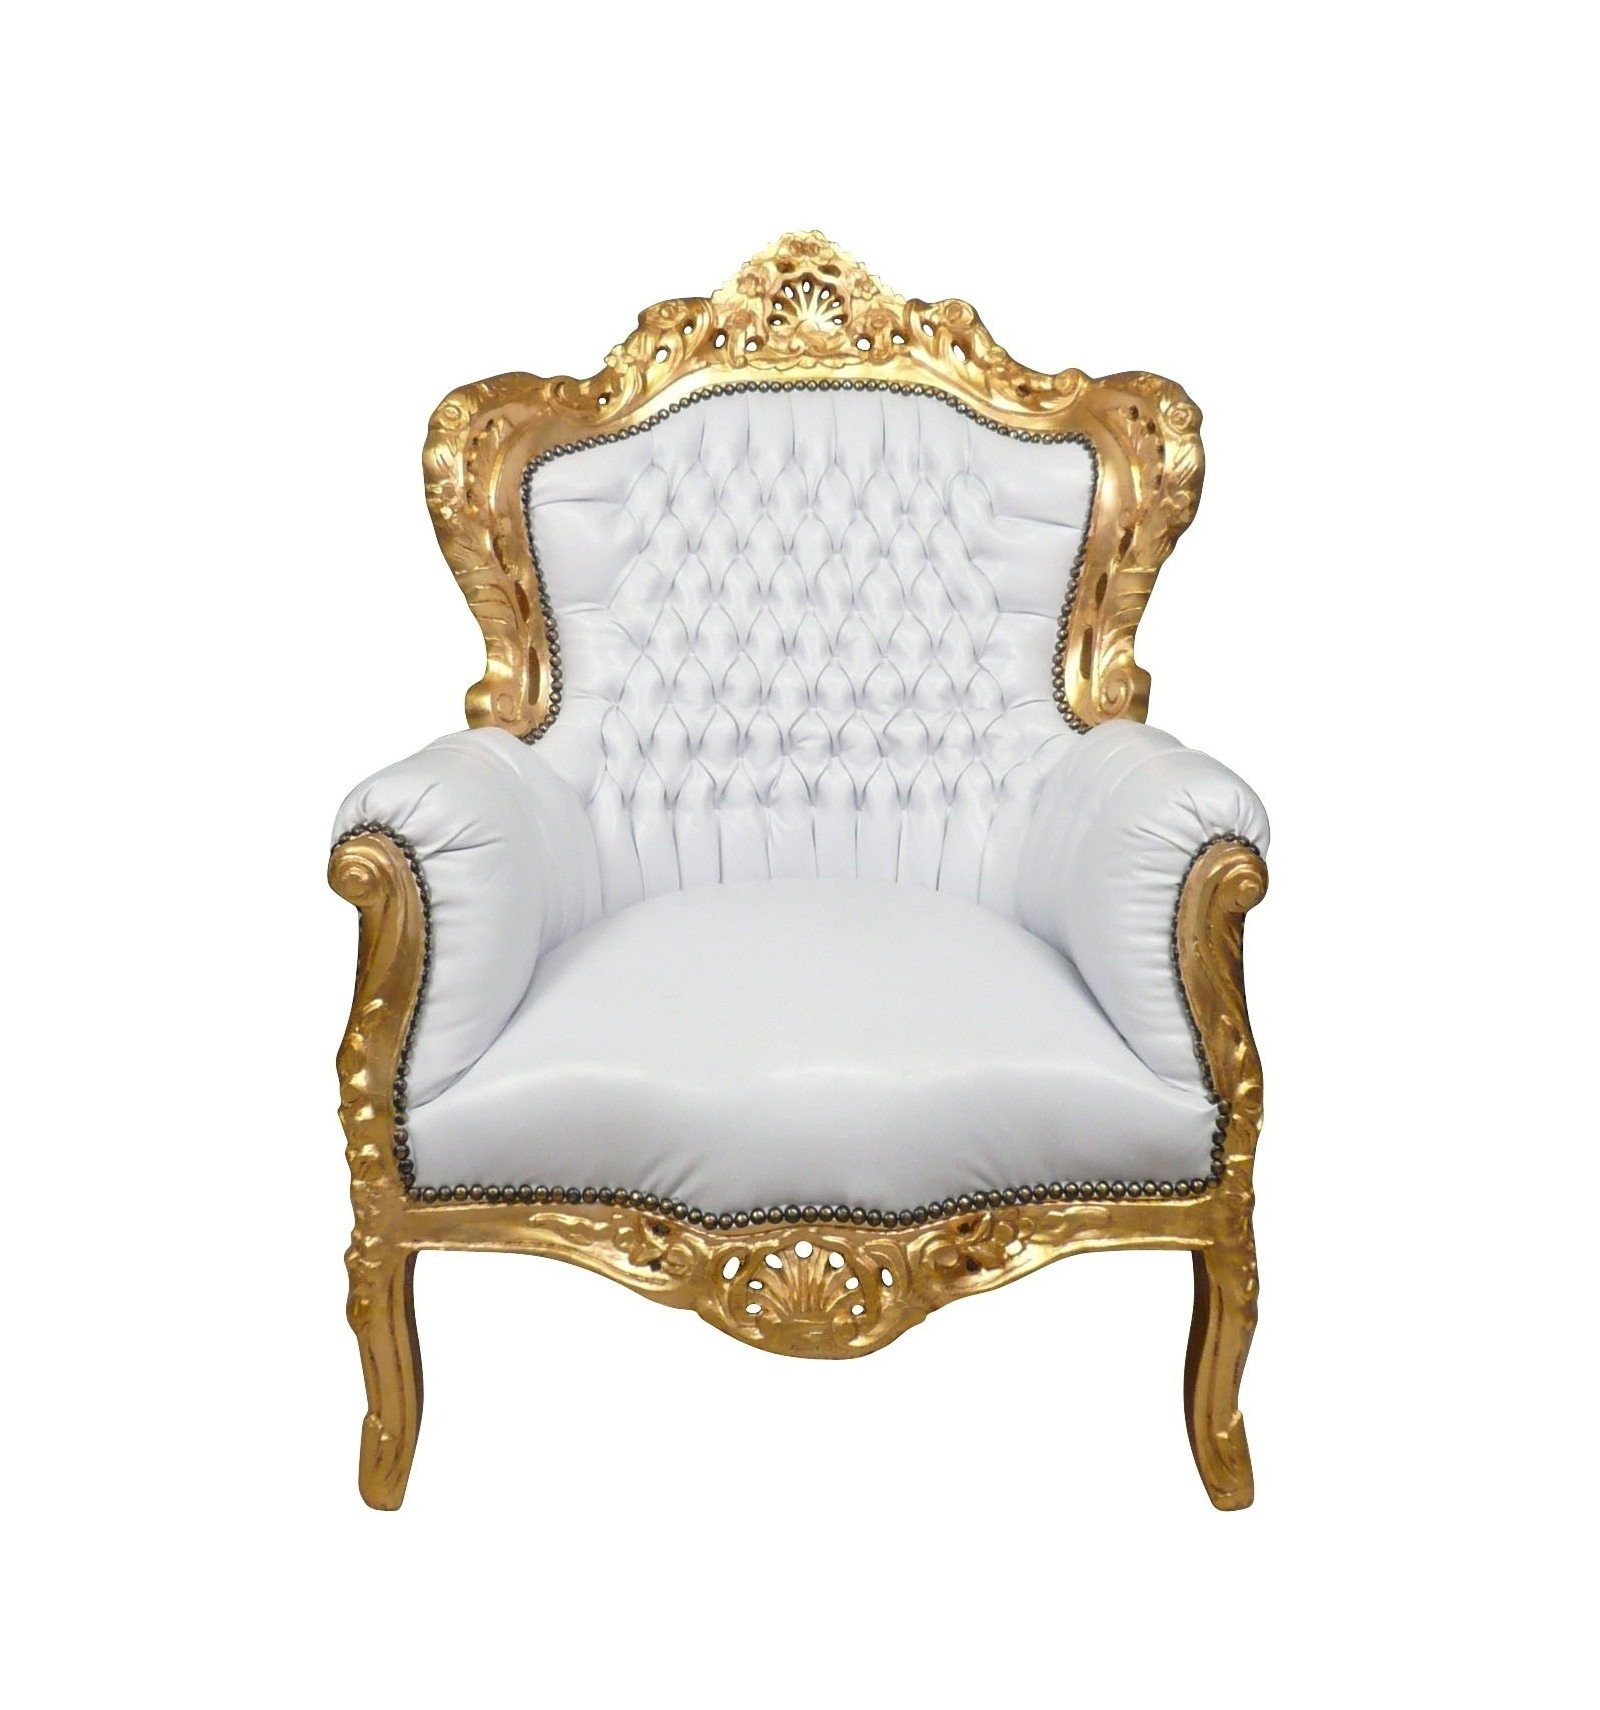 fauteuil baroque blanc et or chaise canap et mobilier de style. Black Bedroom Furniture Sets. Home Design Ideas